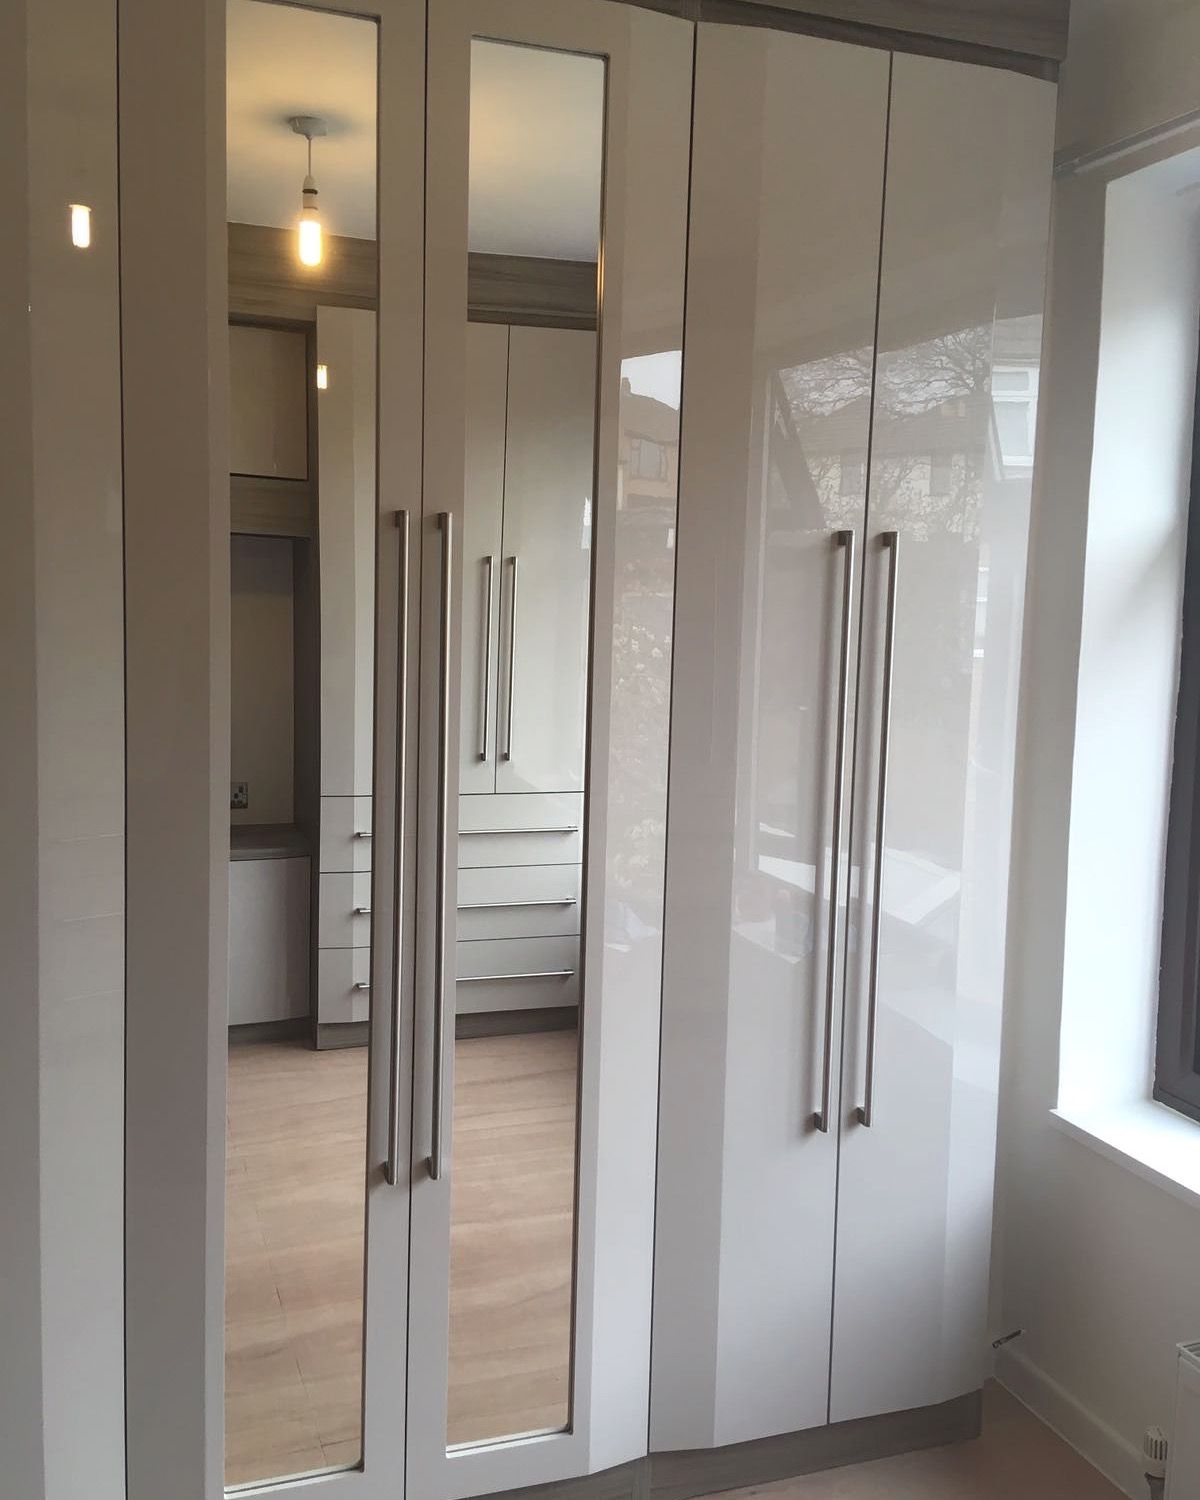 Pin by M&S Bedrooms Ltd on Fitted Bedrooms | Fitted ...